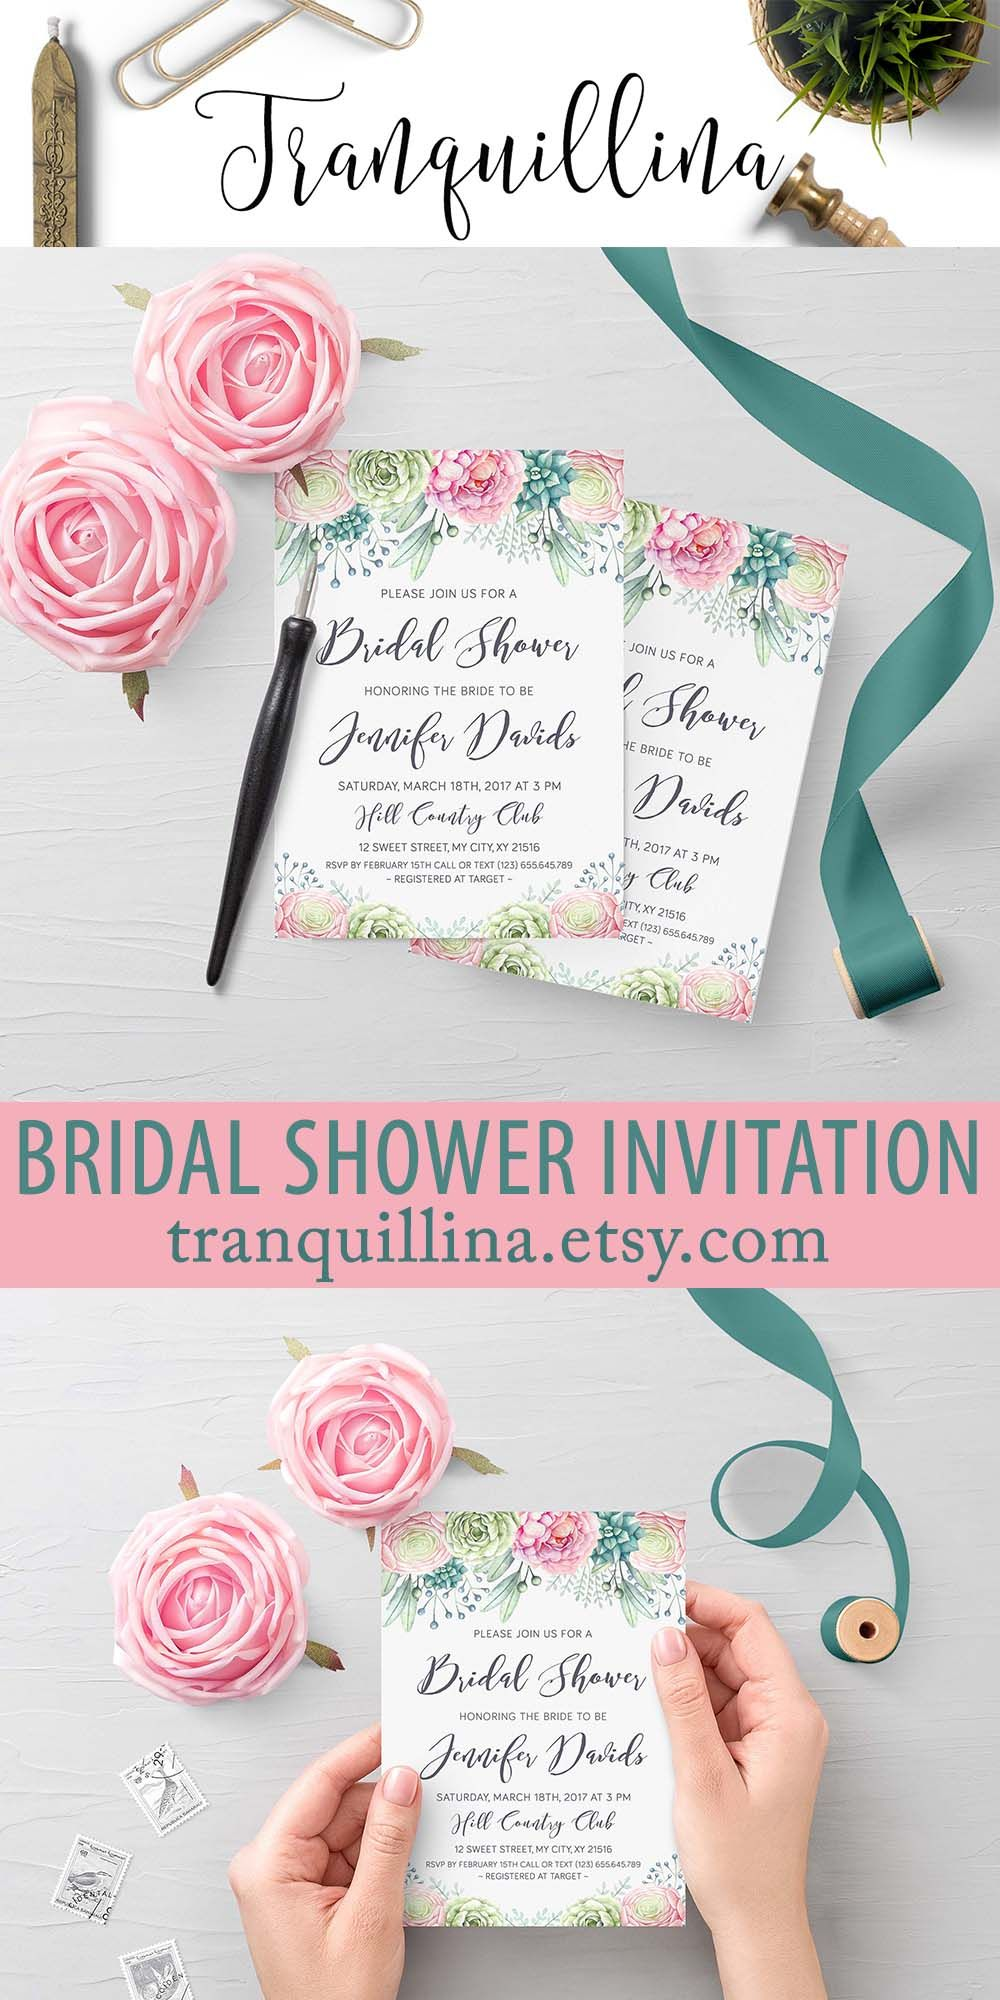 Succulent Bridal Shower Invitation With Beautiful Pastel Pink And